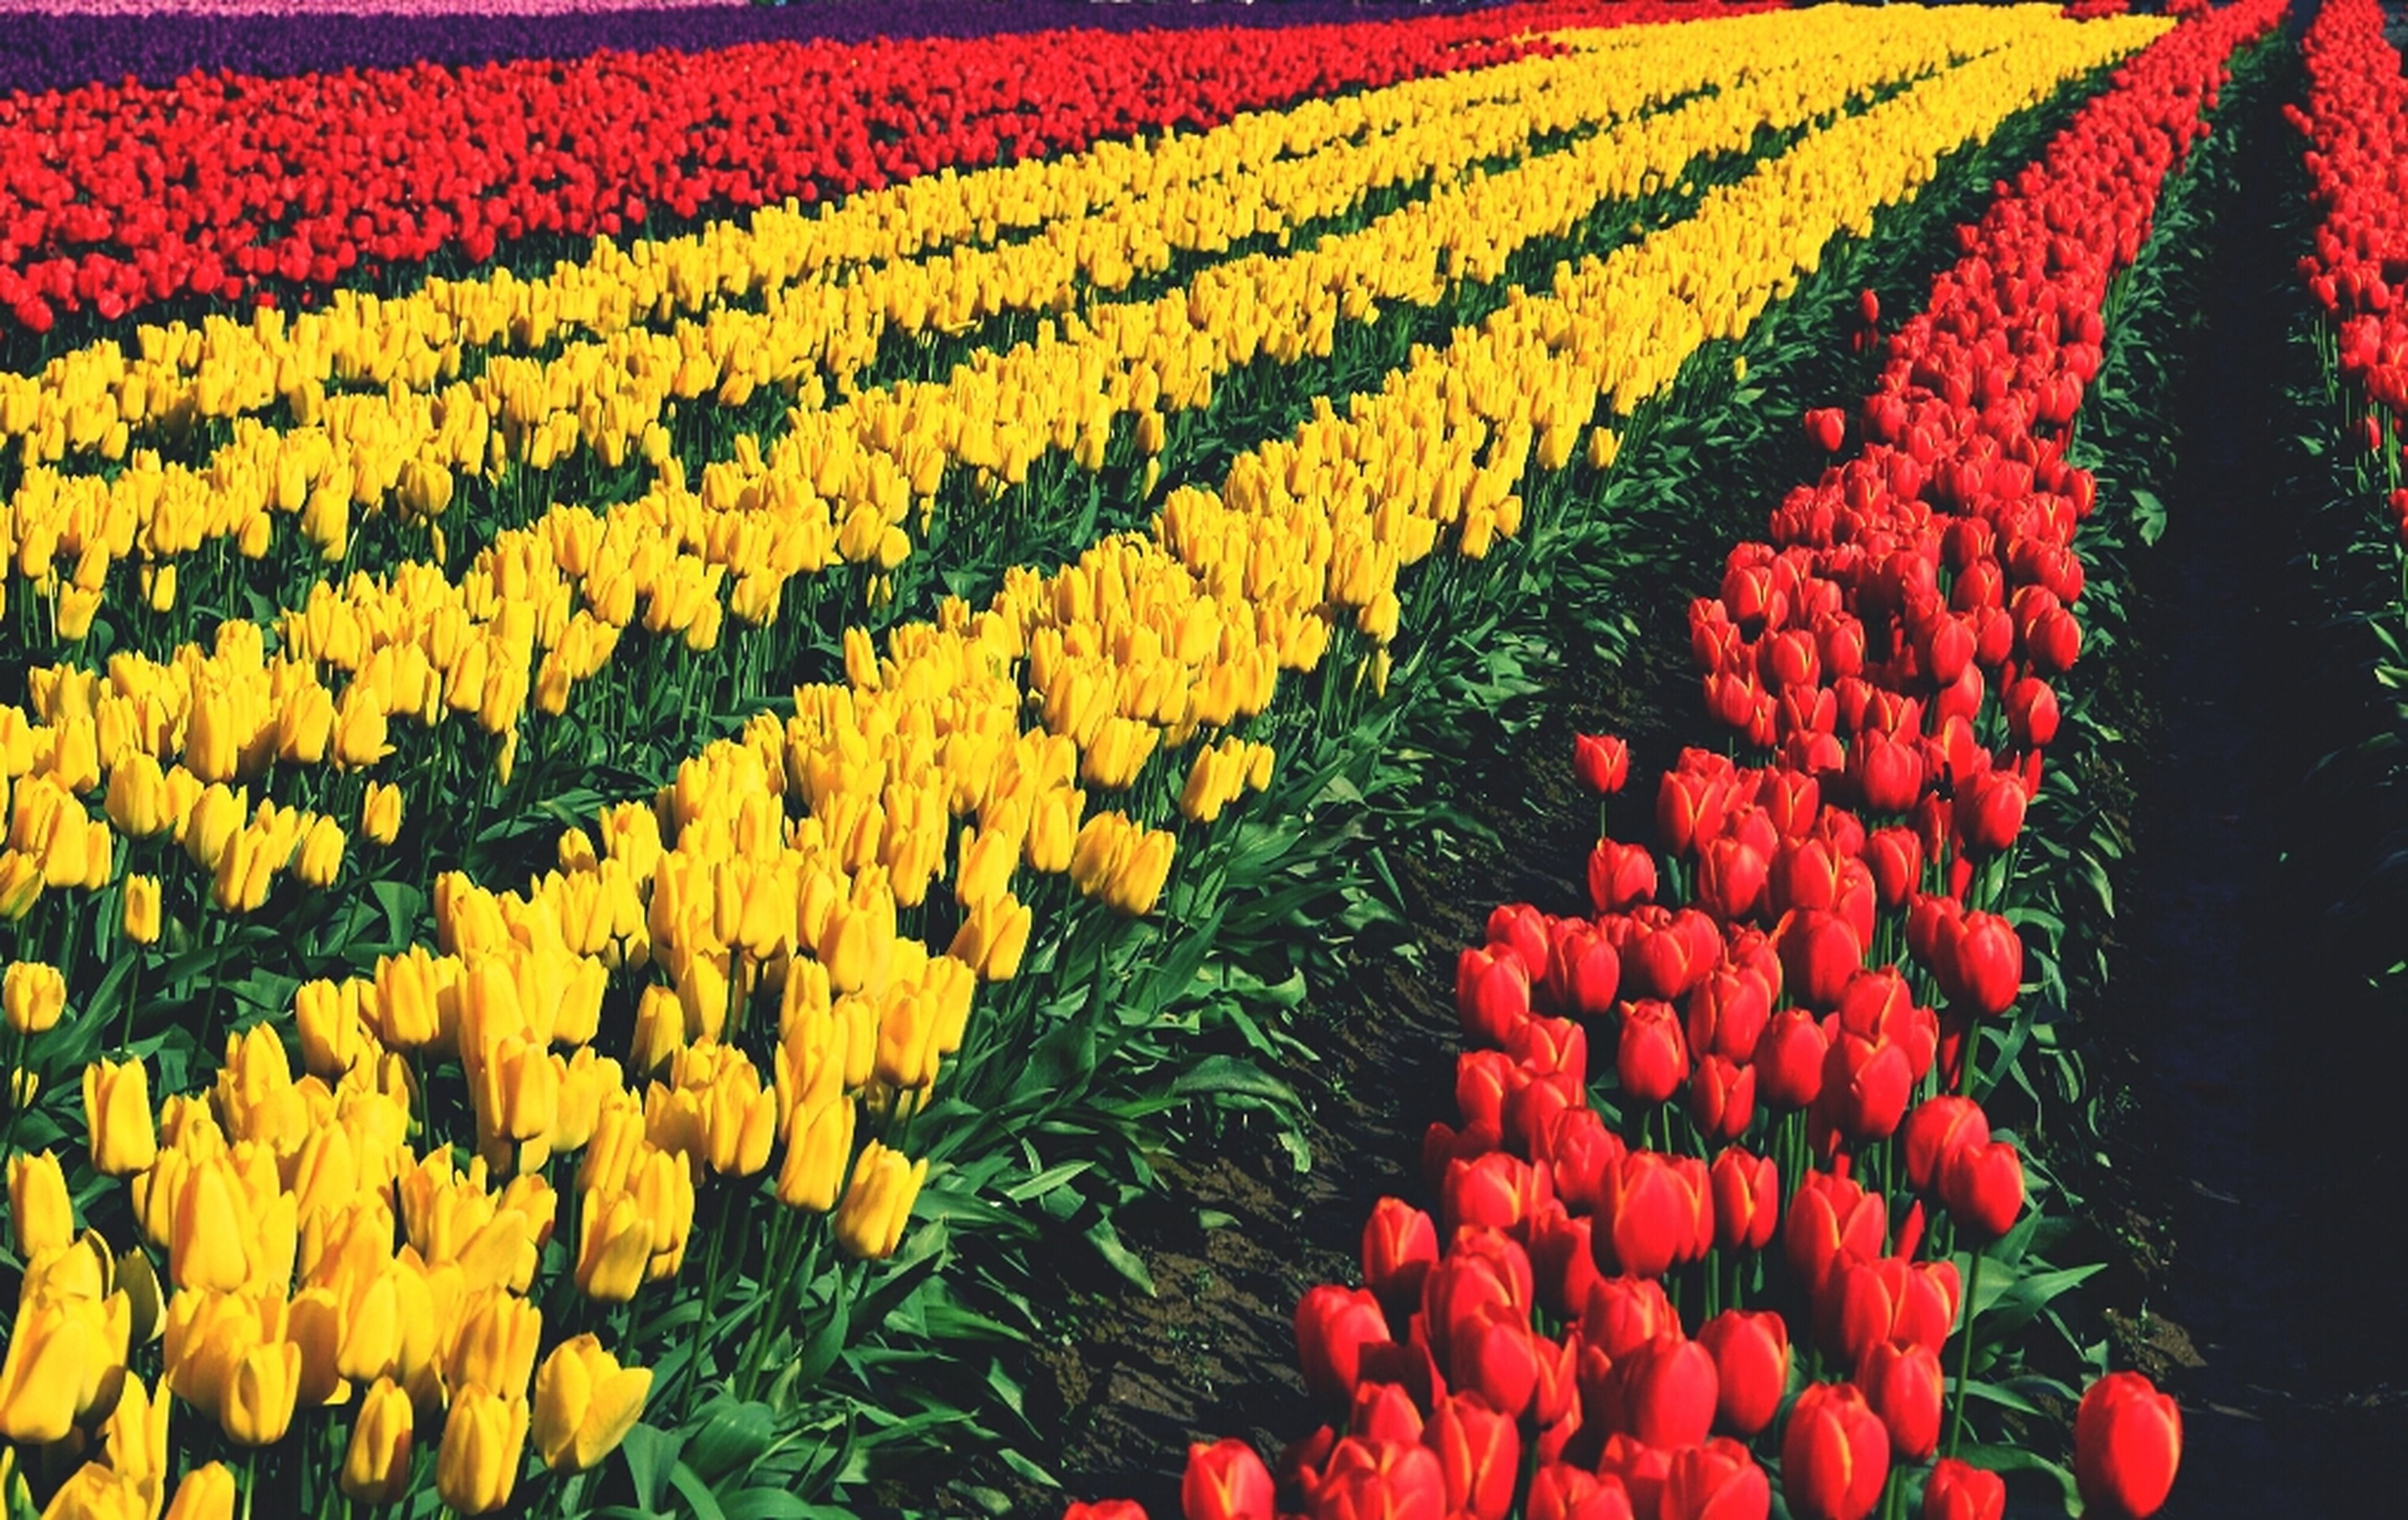 abundance, flower, full frame, multi colored, field, red, backgrounds, tulip, growth, flowerbed, freshness, beauty in nature, colorful, high angle view, agriculture, variation, fragility, large group of objects, nature, yellow